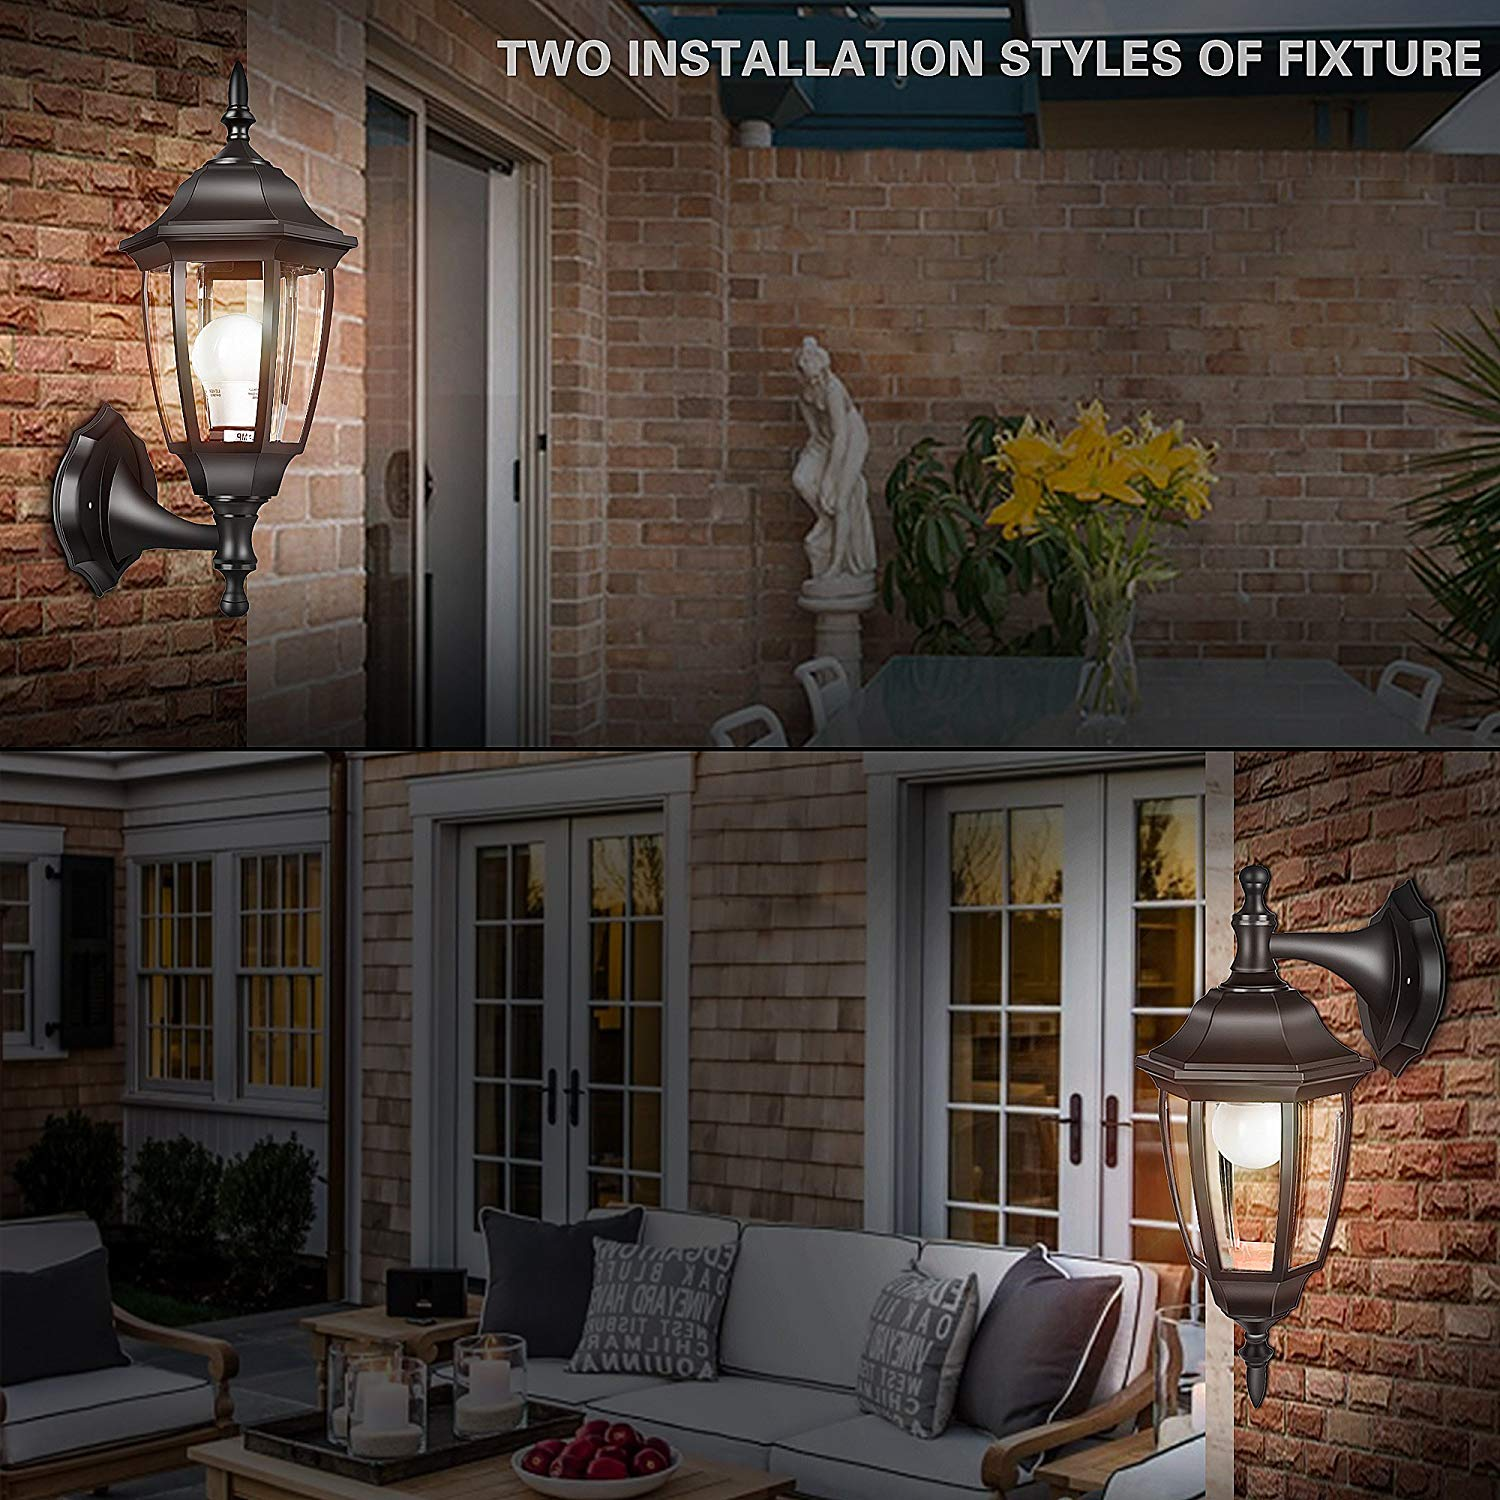 EMART Outdoor Porch Light LED Exterior Wall Light Fixtures, Special Handling Anti-Corrosion 2 Pack